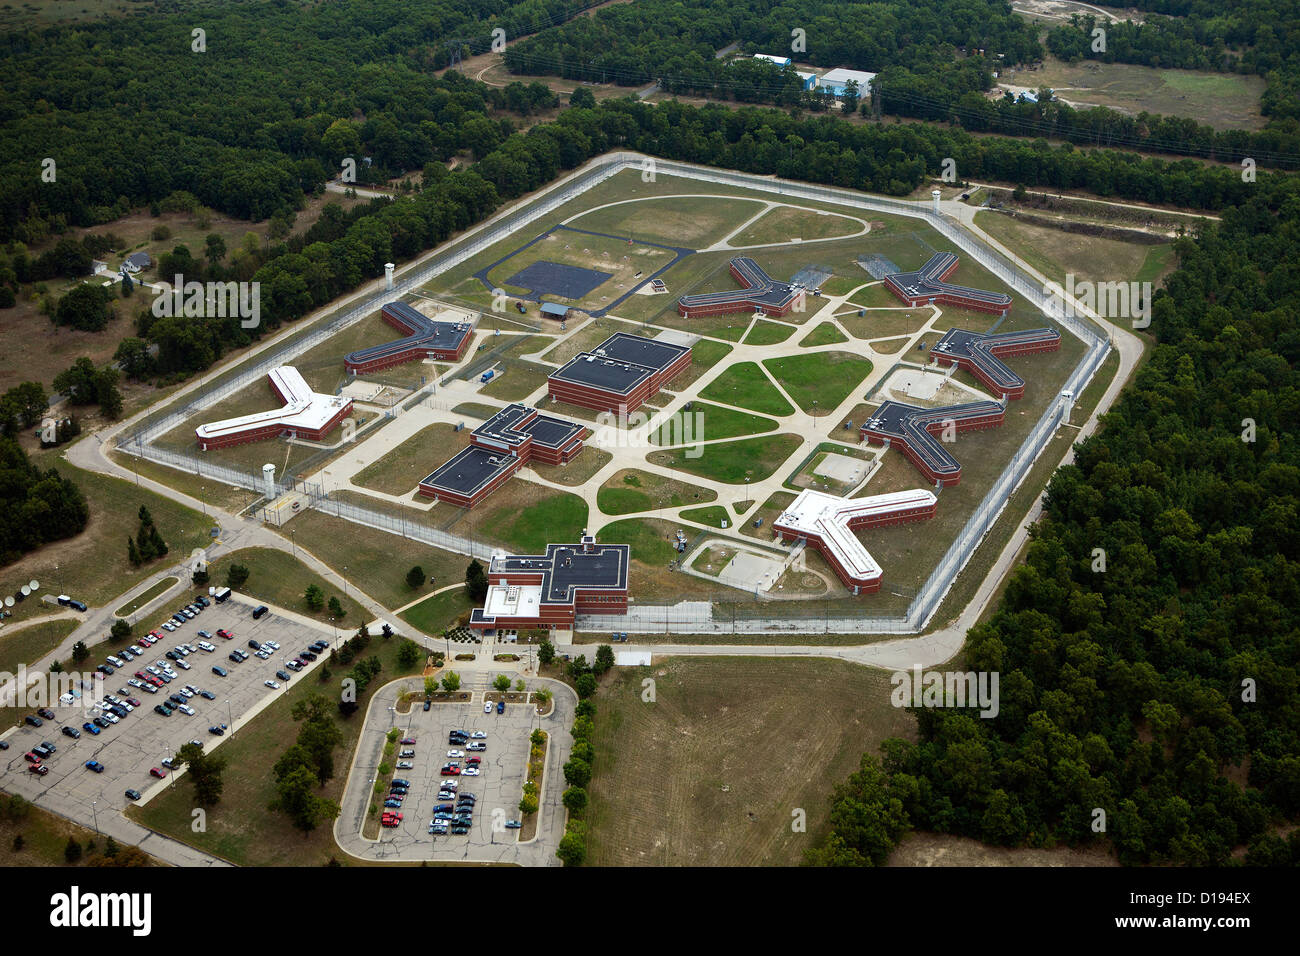 aerial photograph Oaks Correctional Facility, Manistee, Michigan - Stock Image